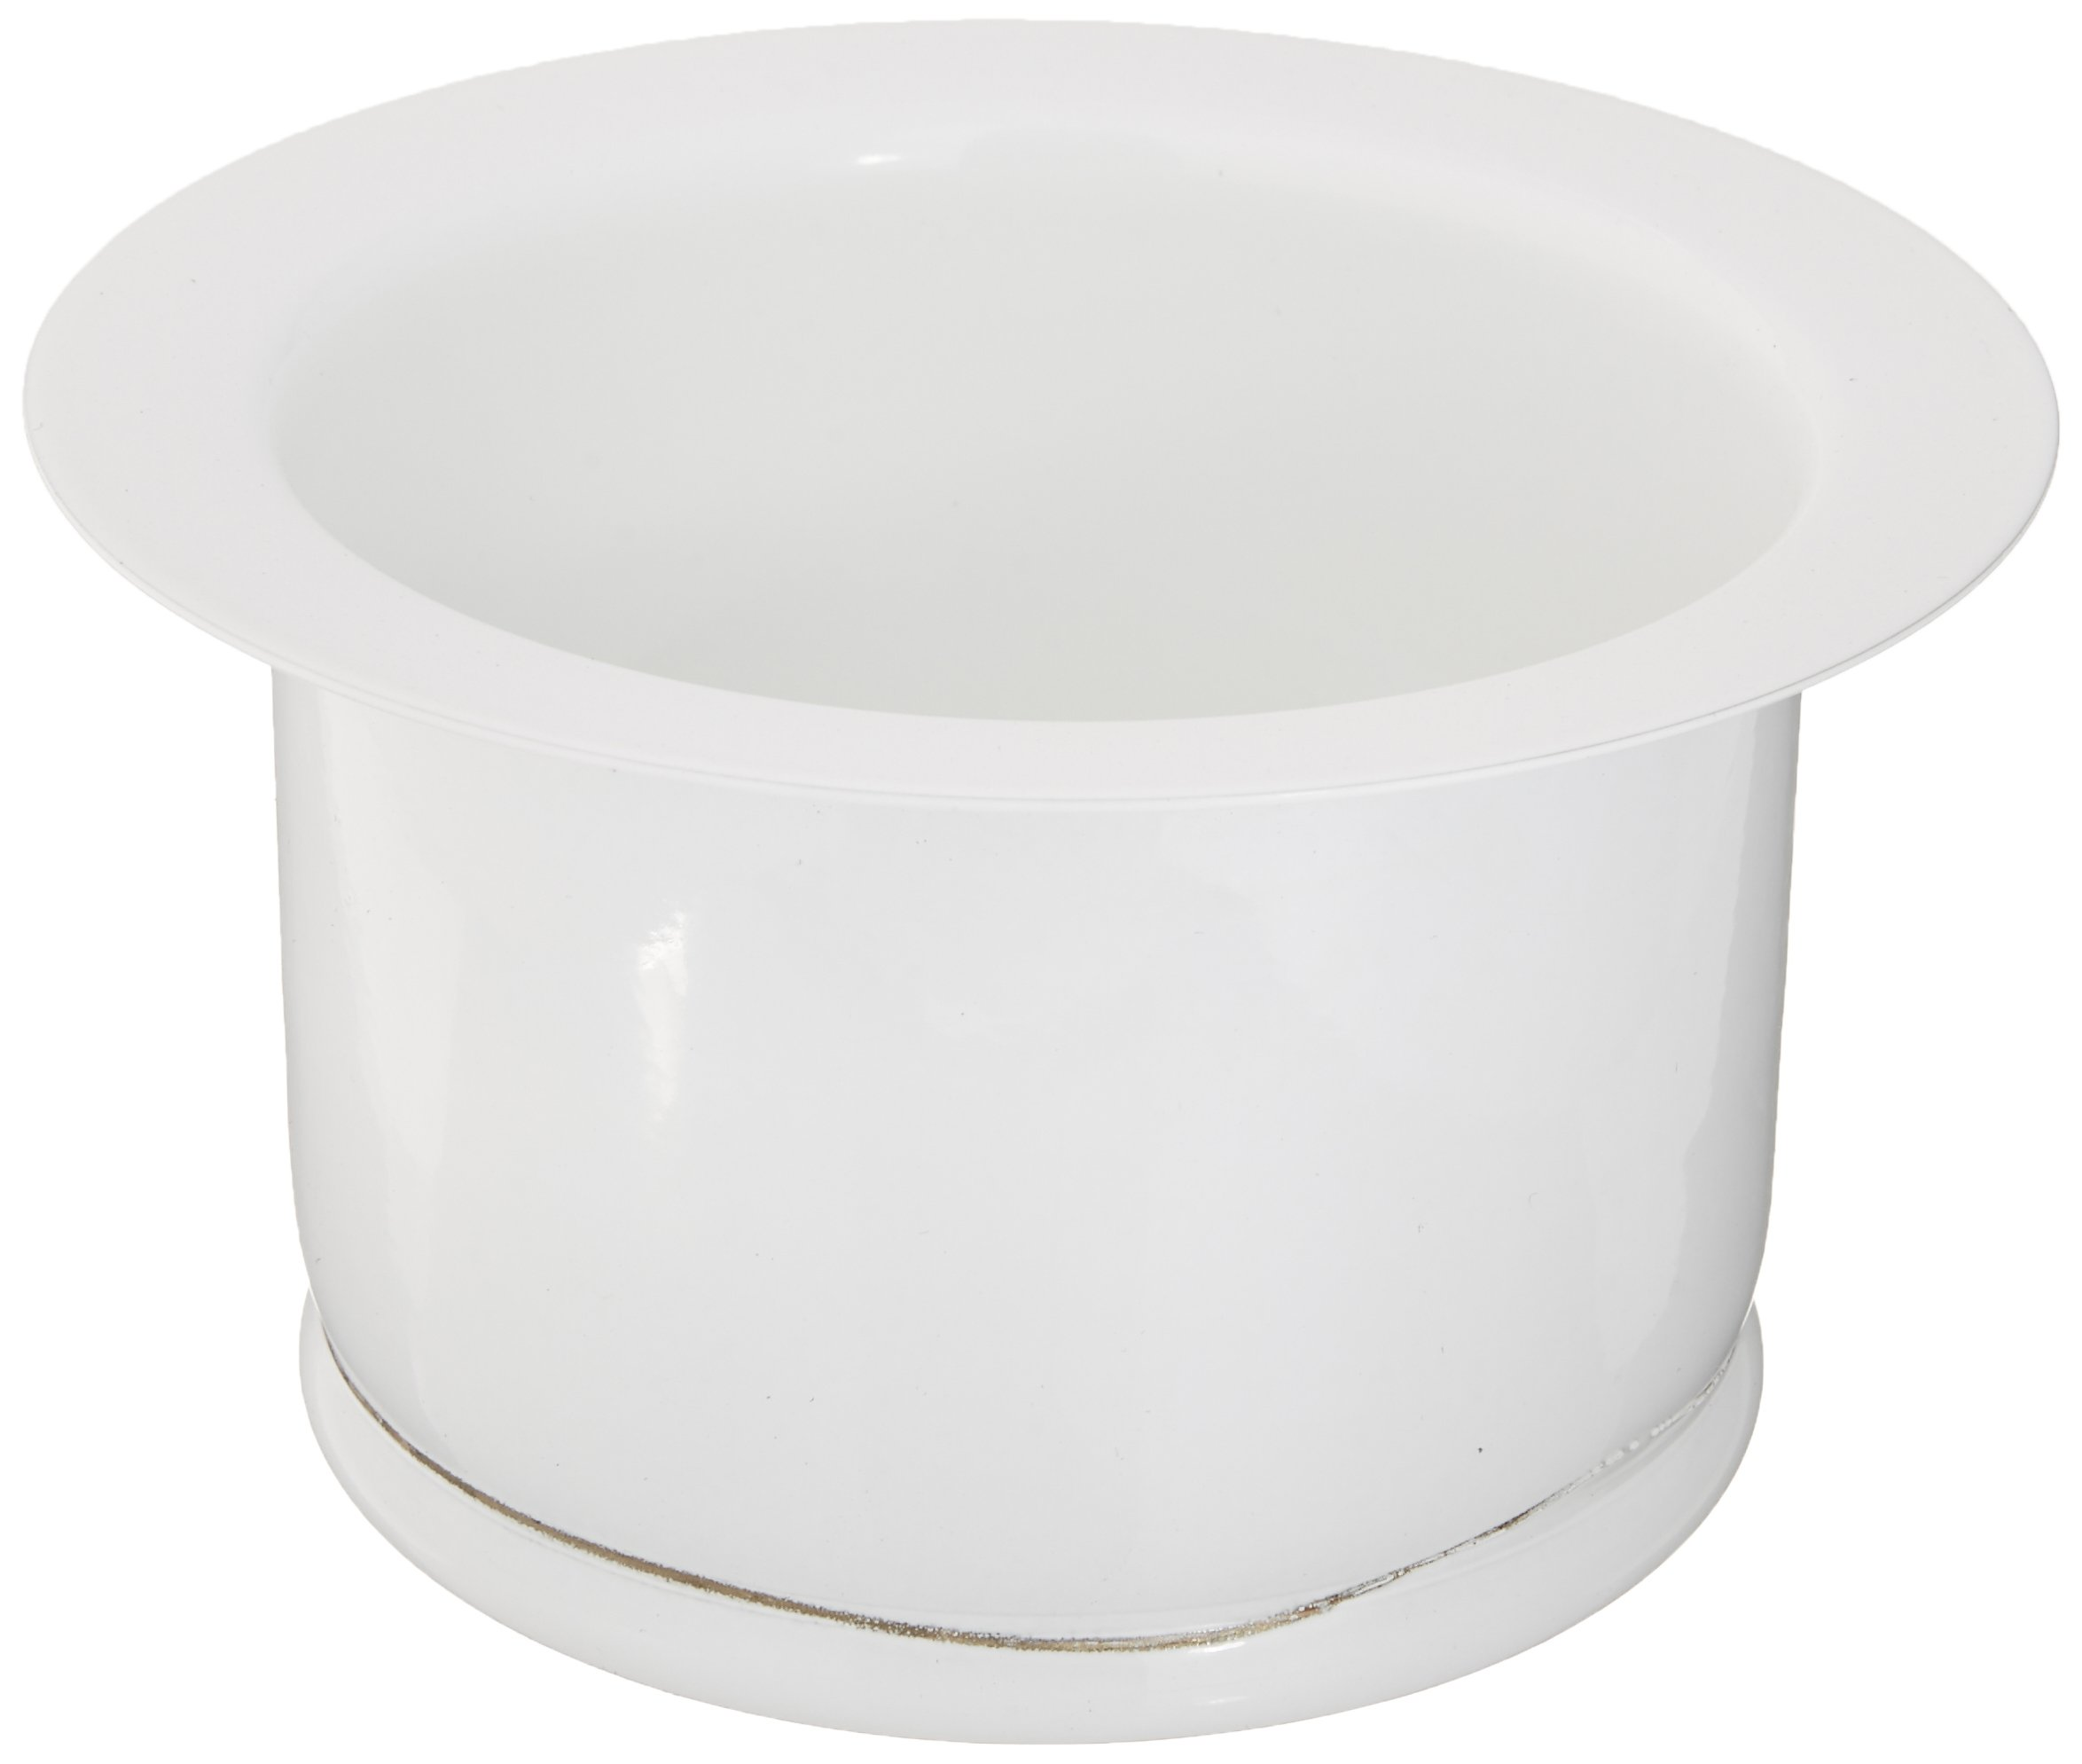 Rohl ISE10082WH 2-1/2-Inch Extended Throat for Fireclay Sinks and Shaws Sinks in White